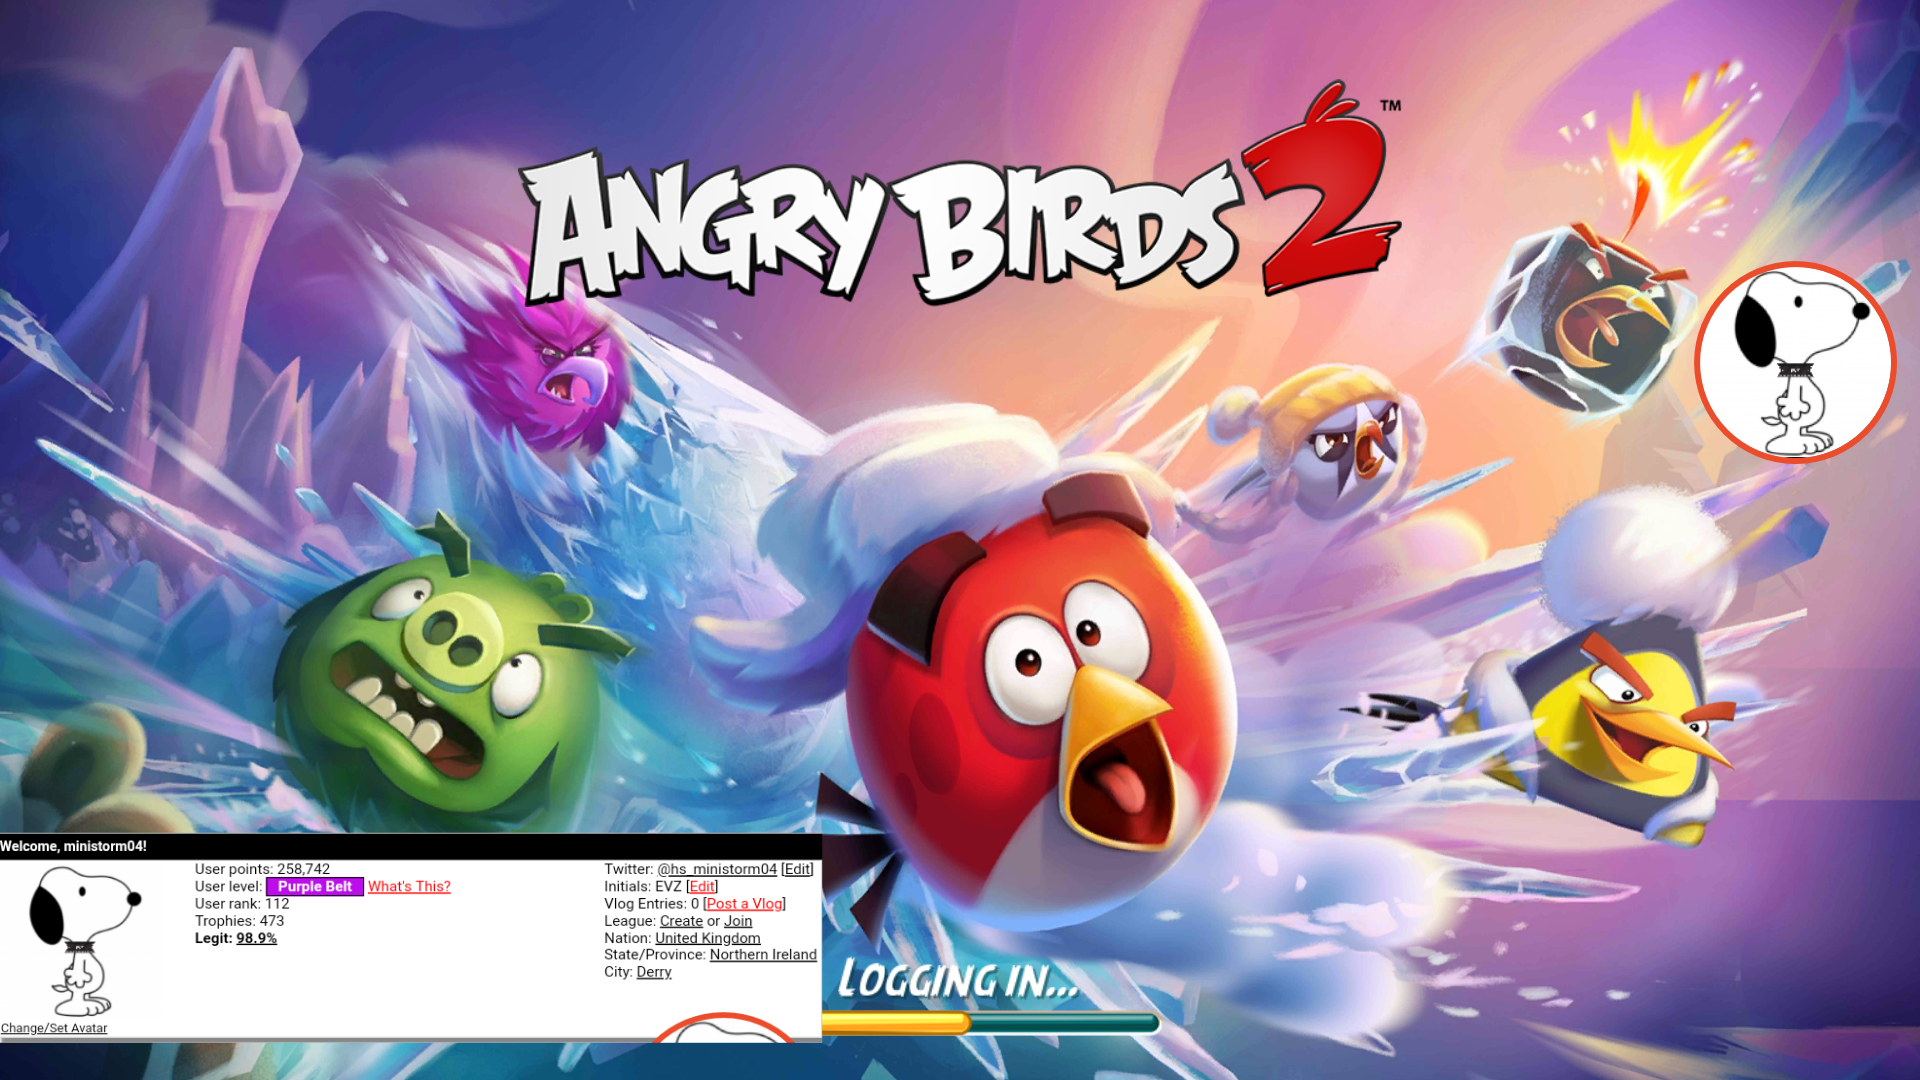 Angry Birds 2: Level 1 297,679 points